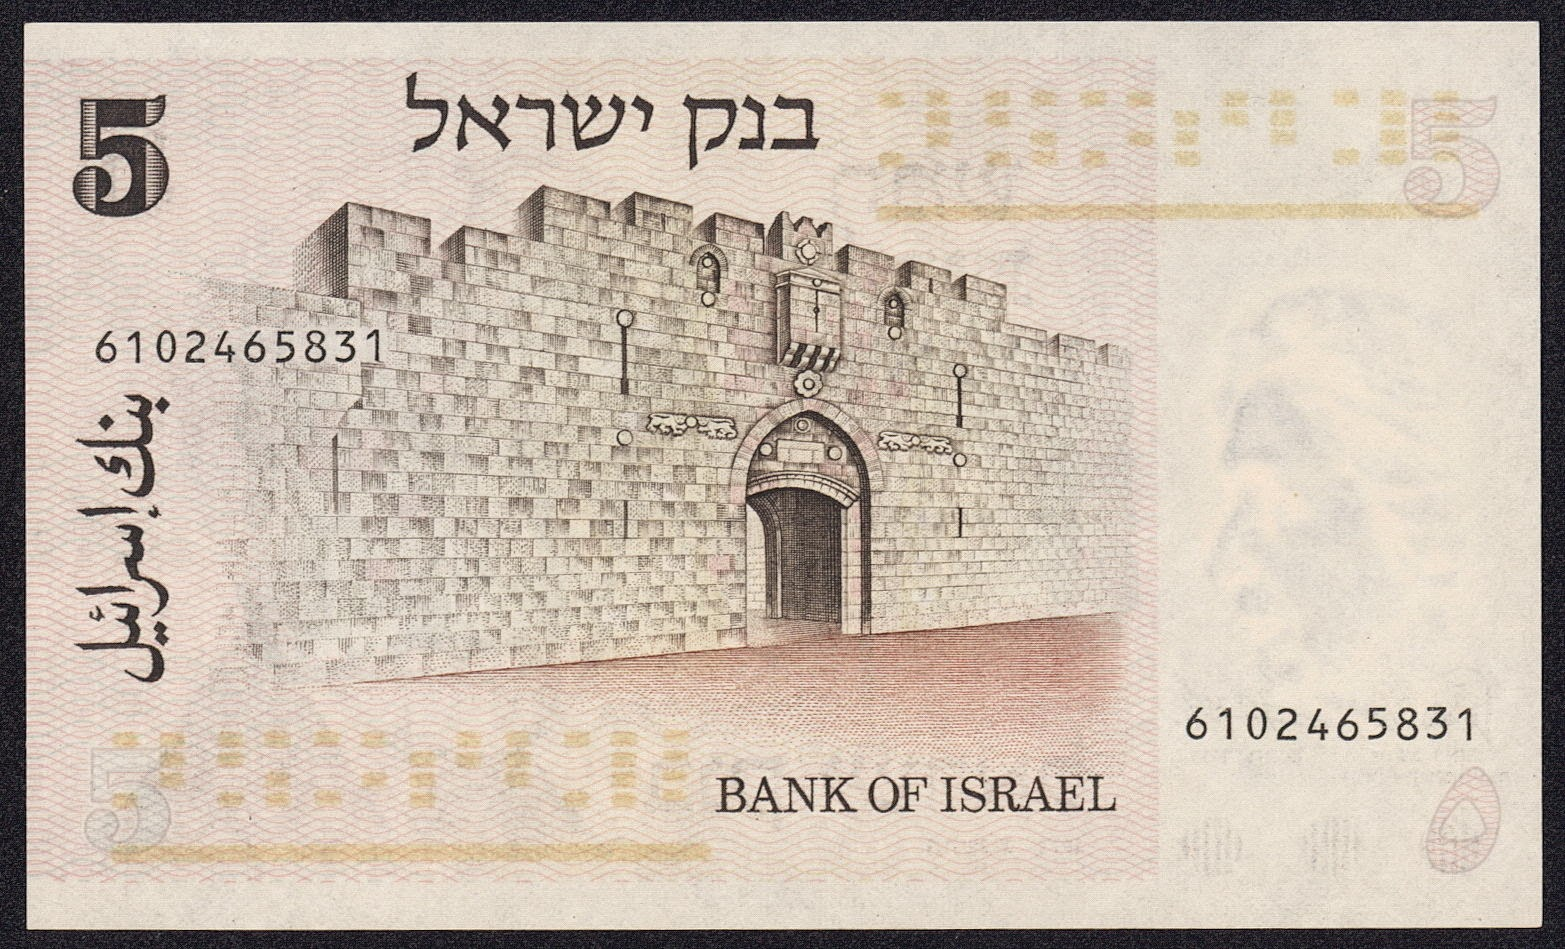 Israel Banknotes 5 Lirot Note 1973 Lion's Gate in the Old City of Jerusalem